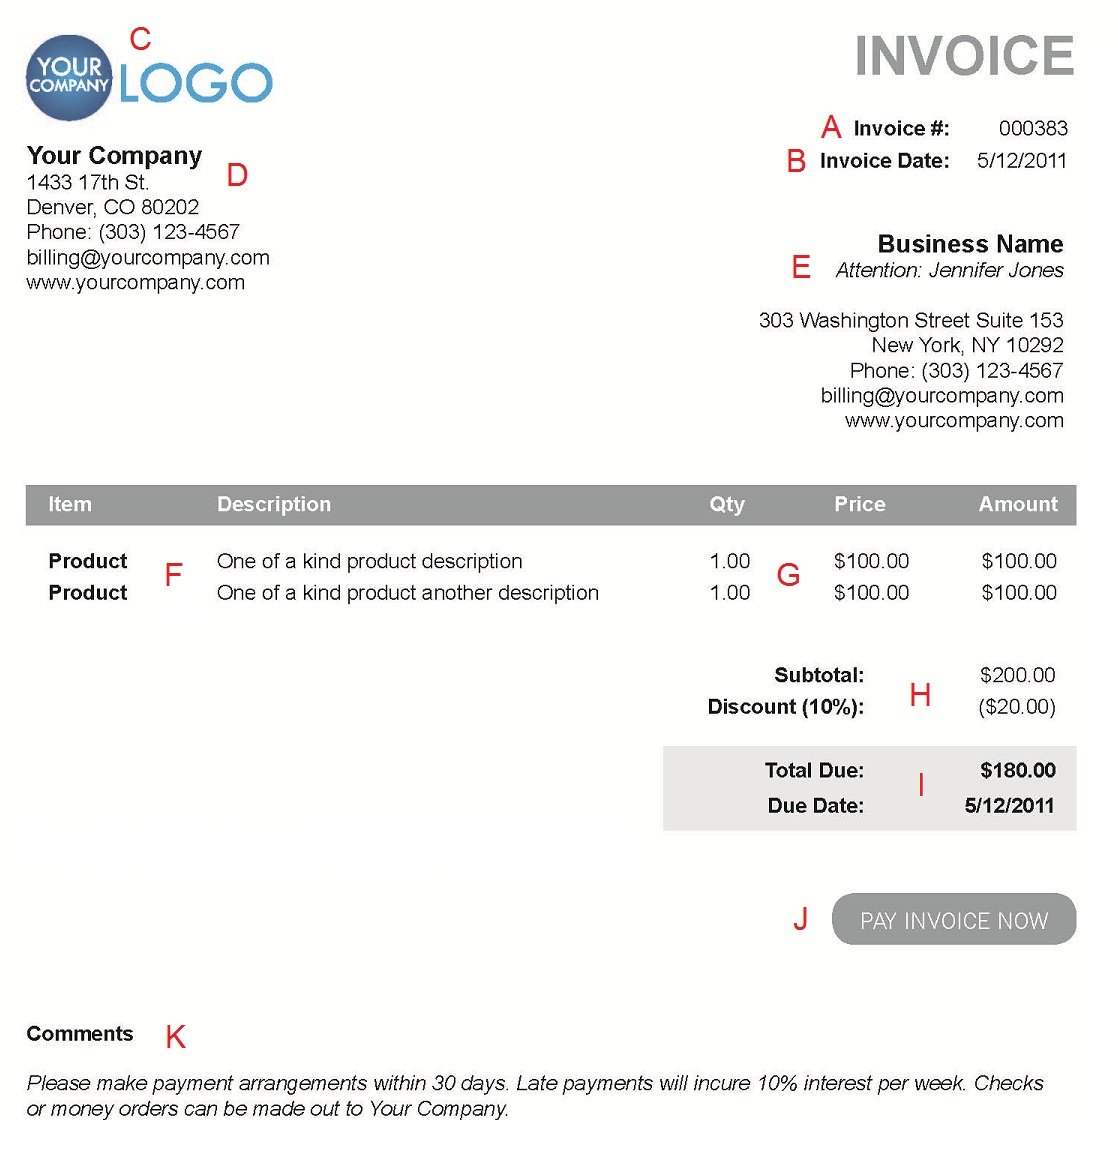 Darkfaderus  Splendid The  Different Sections Of An Electronic Payment Invoice With Fetching A  With Delightful Fedex Tracking Number On Receipt Also Home Depot Lost Receipt In Addition Receipt In Italian And Broward County Business Tax Receipt As Well As What Is The Abbreviation For Receipt Additionally Receipt Format India From Paysimplecom With Darkfaderus  Fetching The  Different Sections Of An Electronic Payment Invoice With Delightful A  And Splendid Fedex Tracking Number On Receipt Also Home Depot Lost Receipt In Addition Receipt In Italian From Paysimplecom